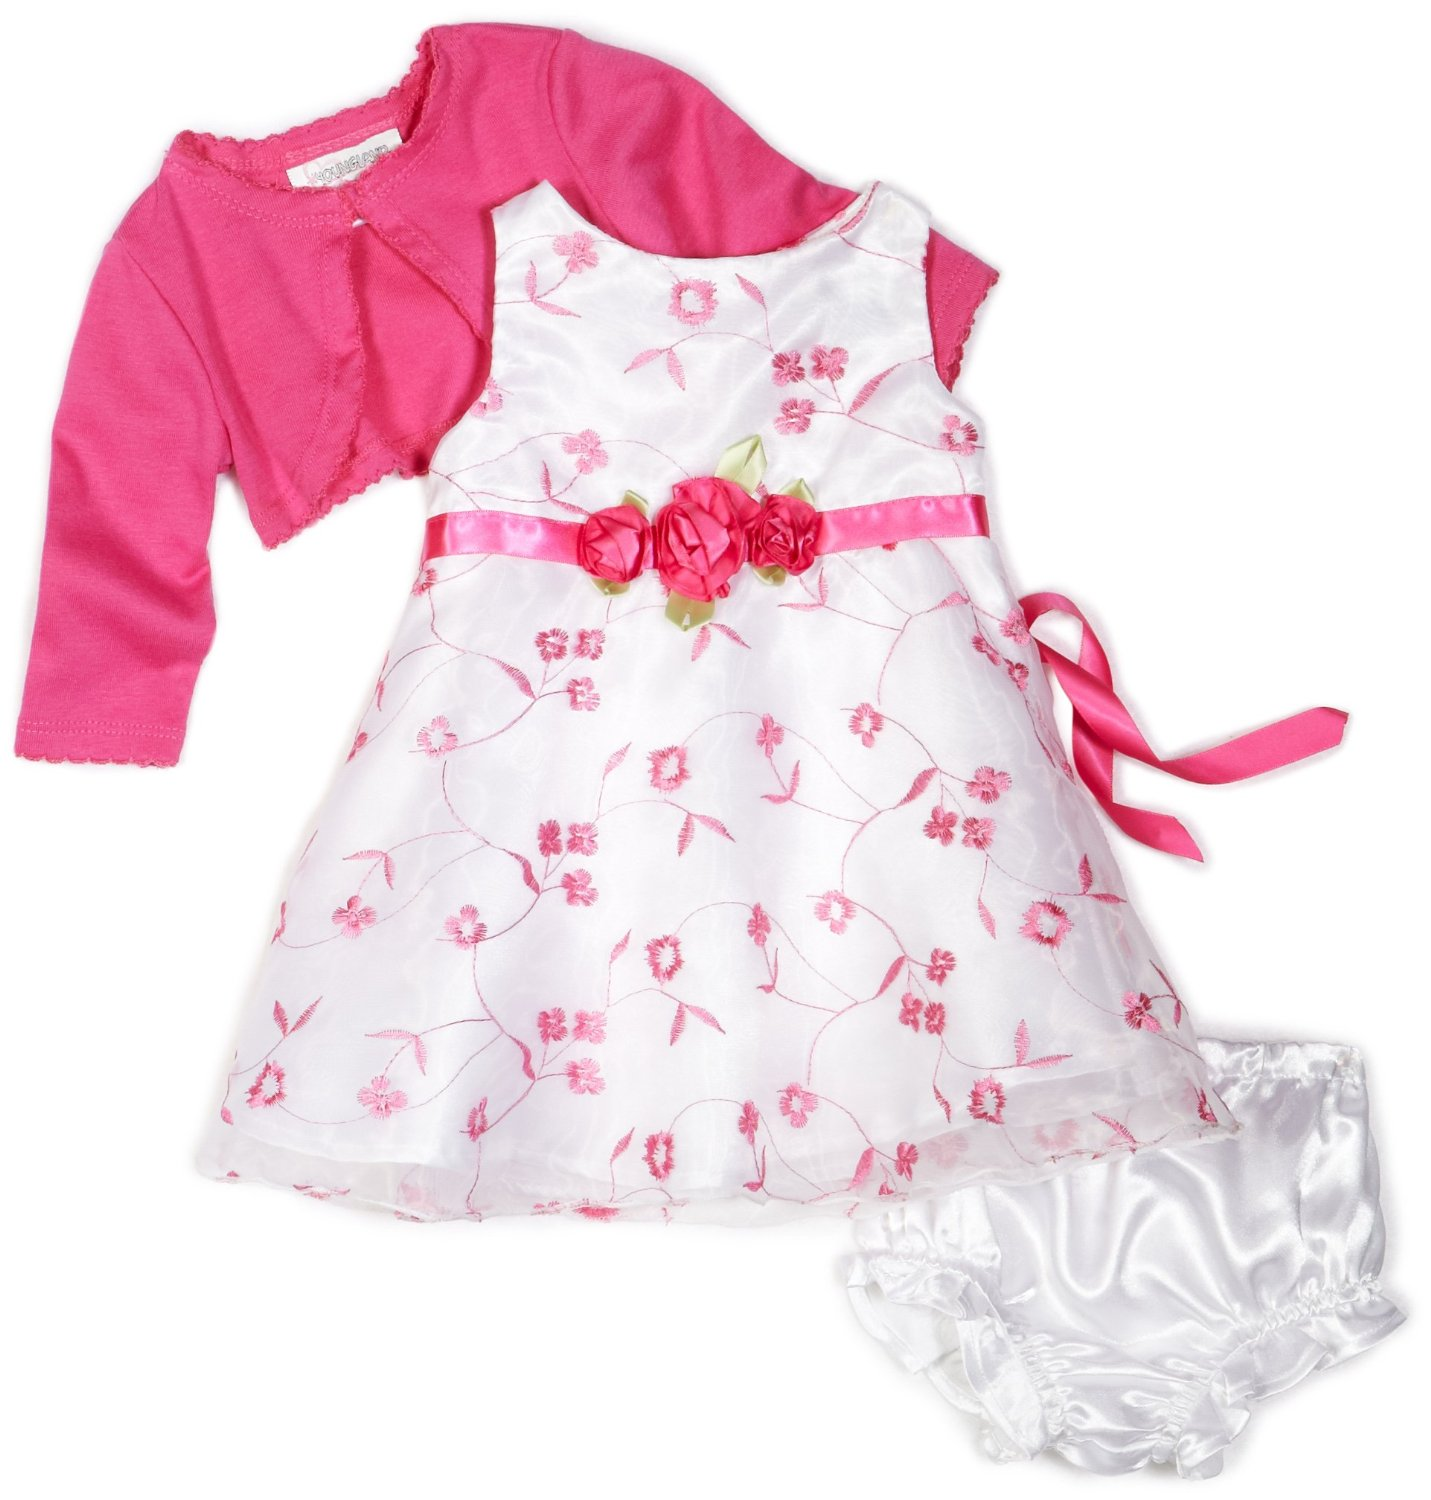 baby girl clothing images of babiesu0027 fashions | youngland baby girls infant 3 piece embroidery  dress zfykmjo